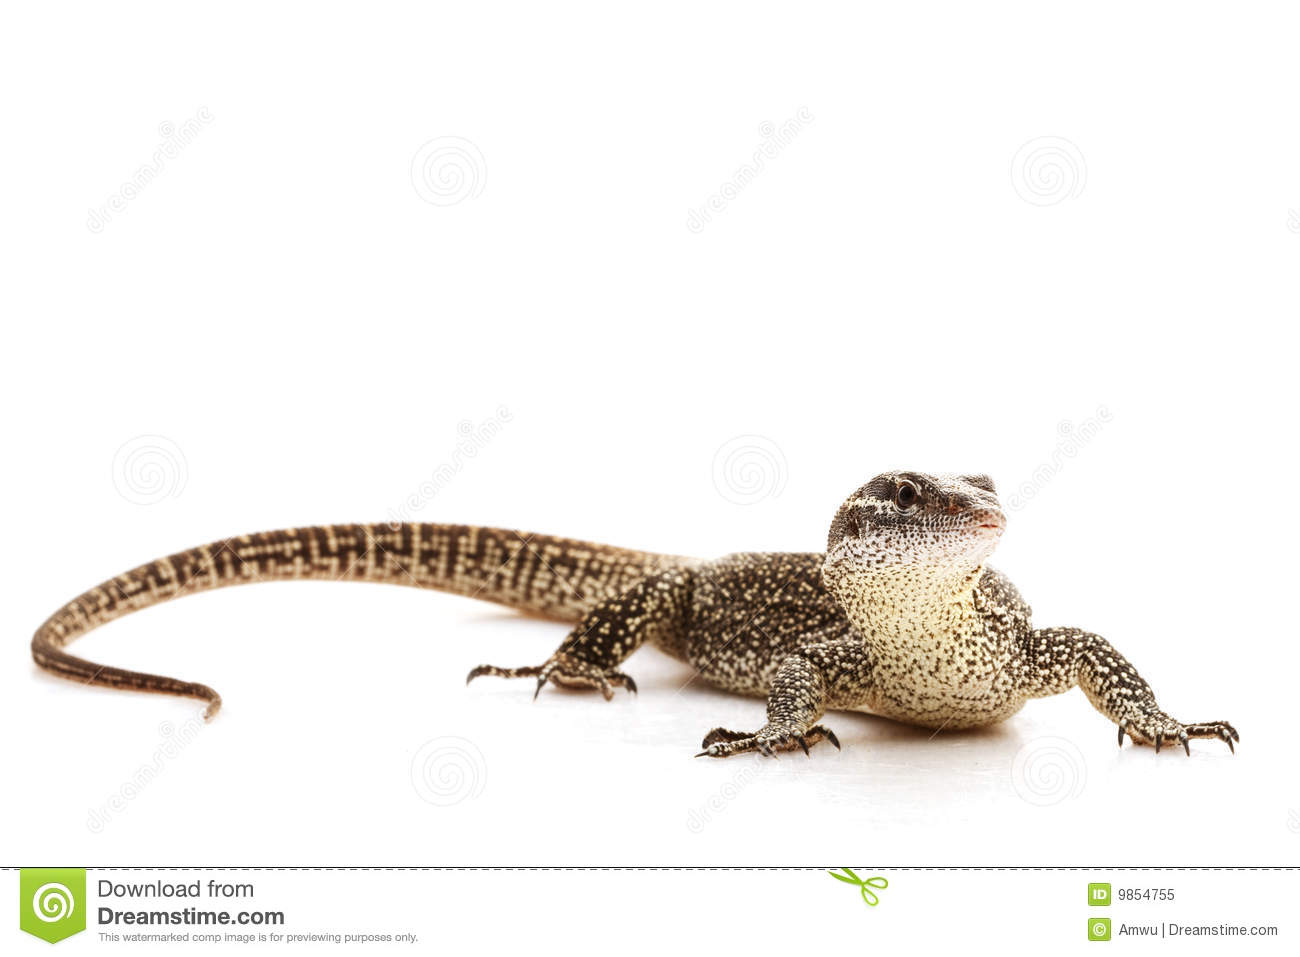 Monitor Lizard clipart #11, Download drawings